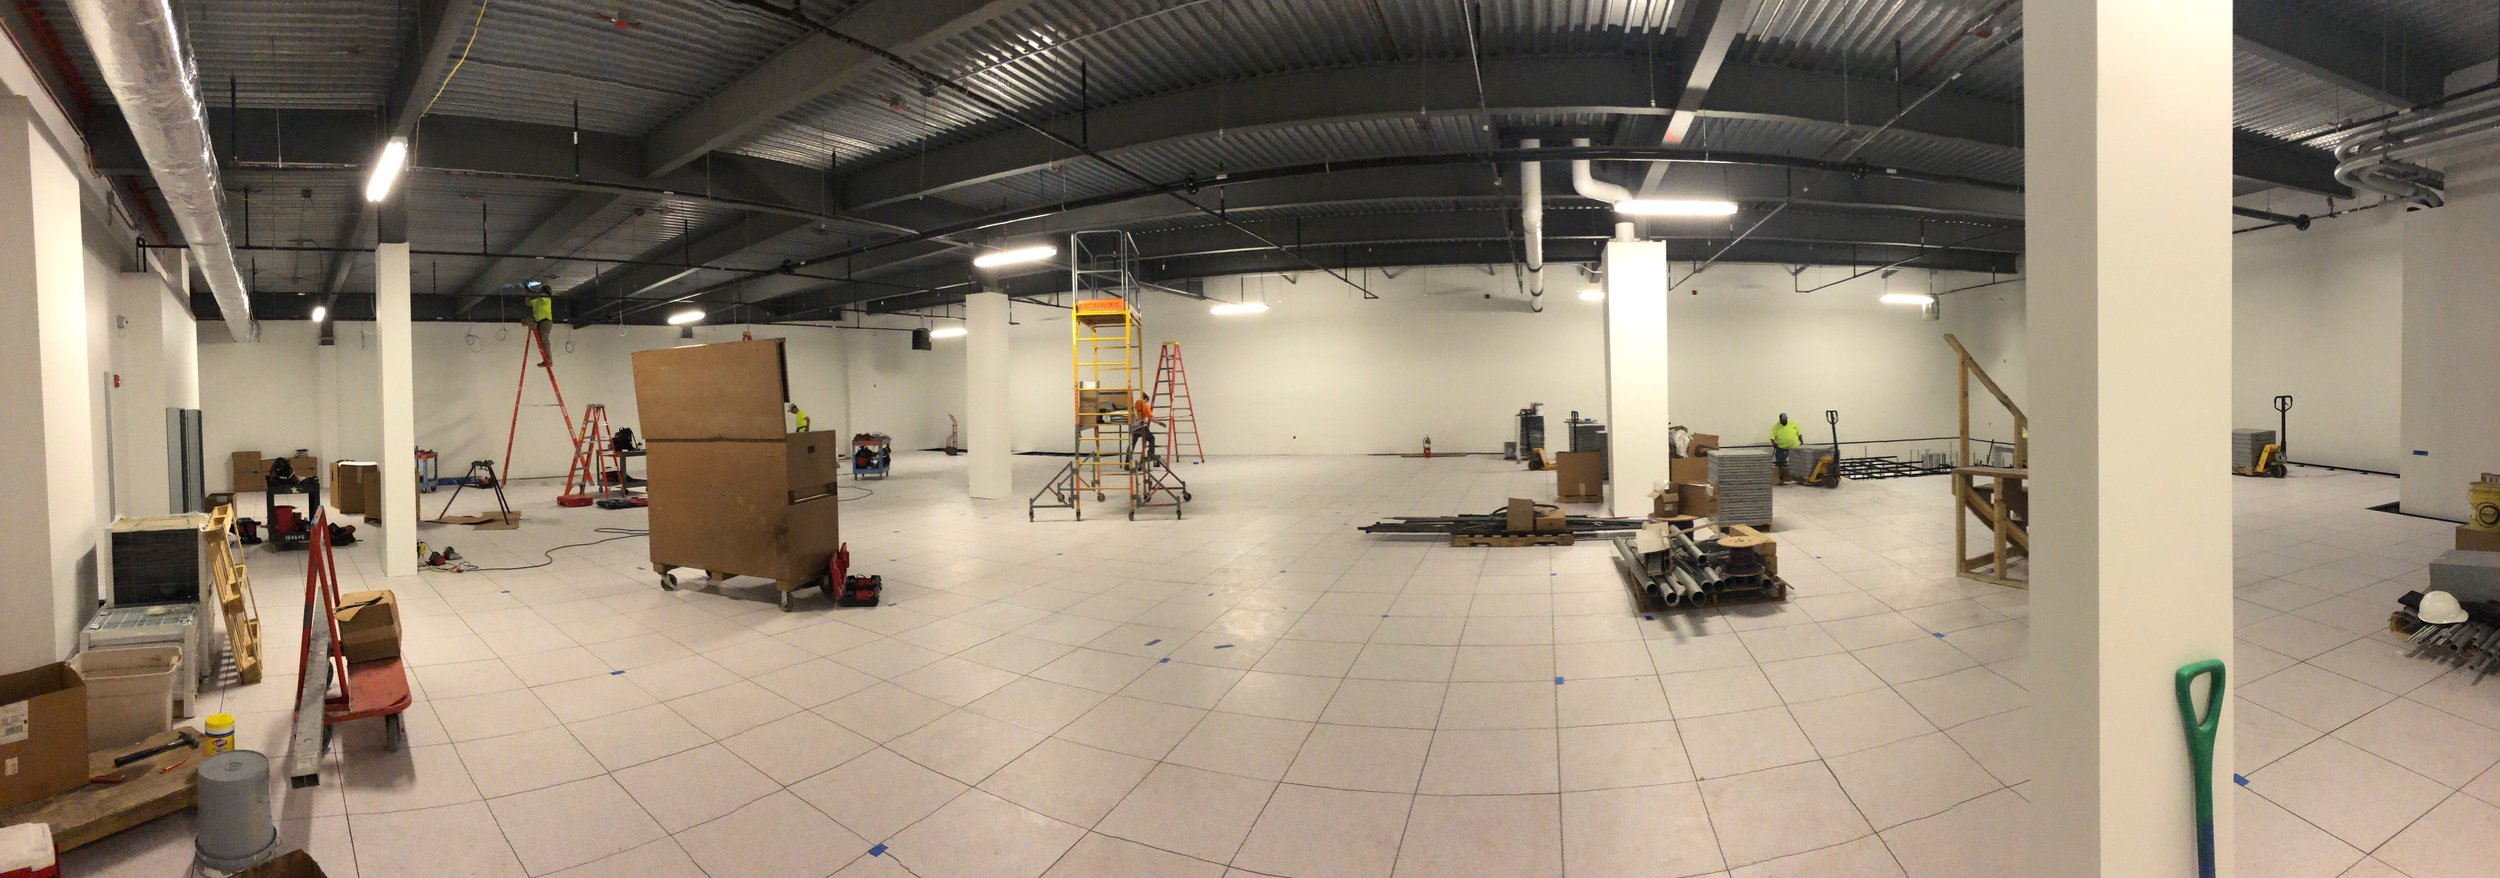 Week of June 3rd - June 7th, 2019   Almost two weeks of construction and the flooring is complete.